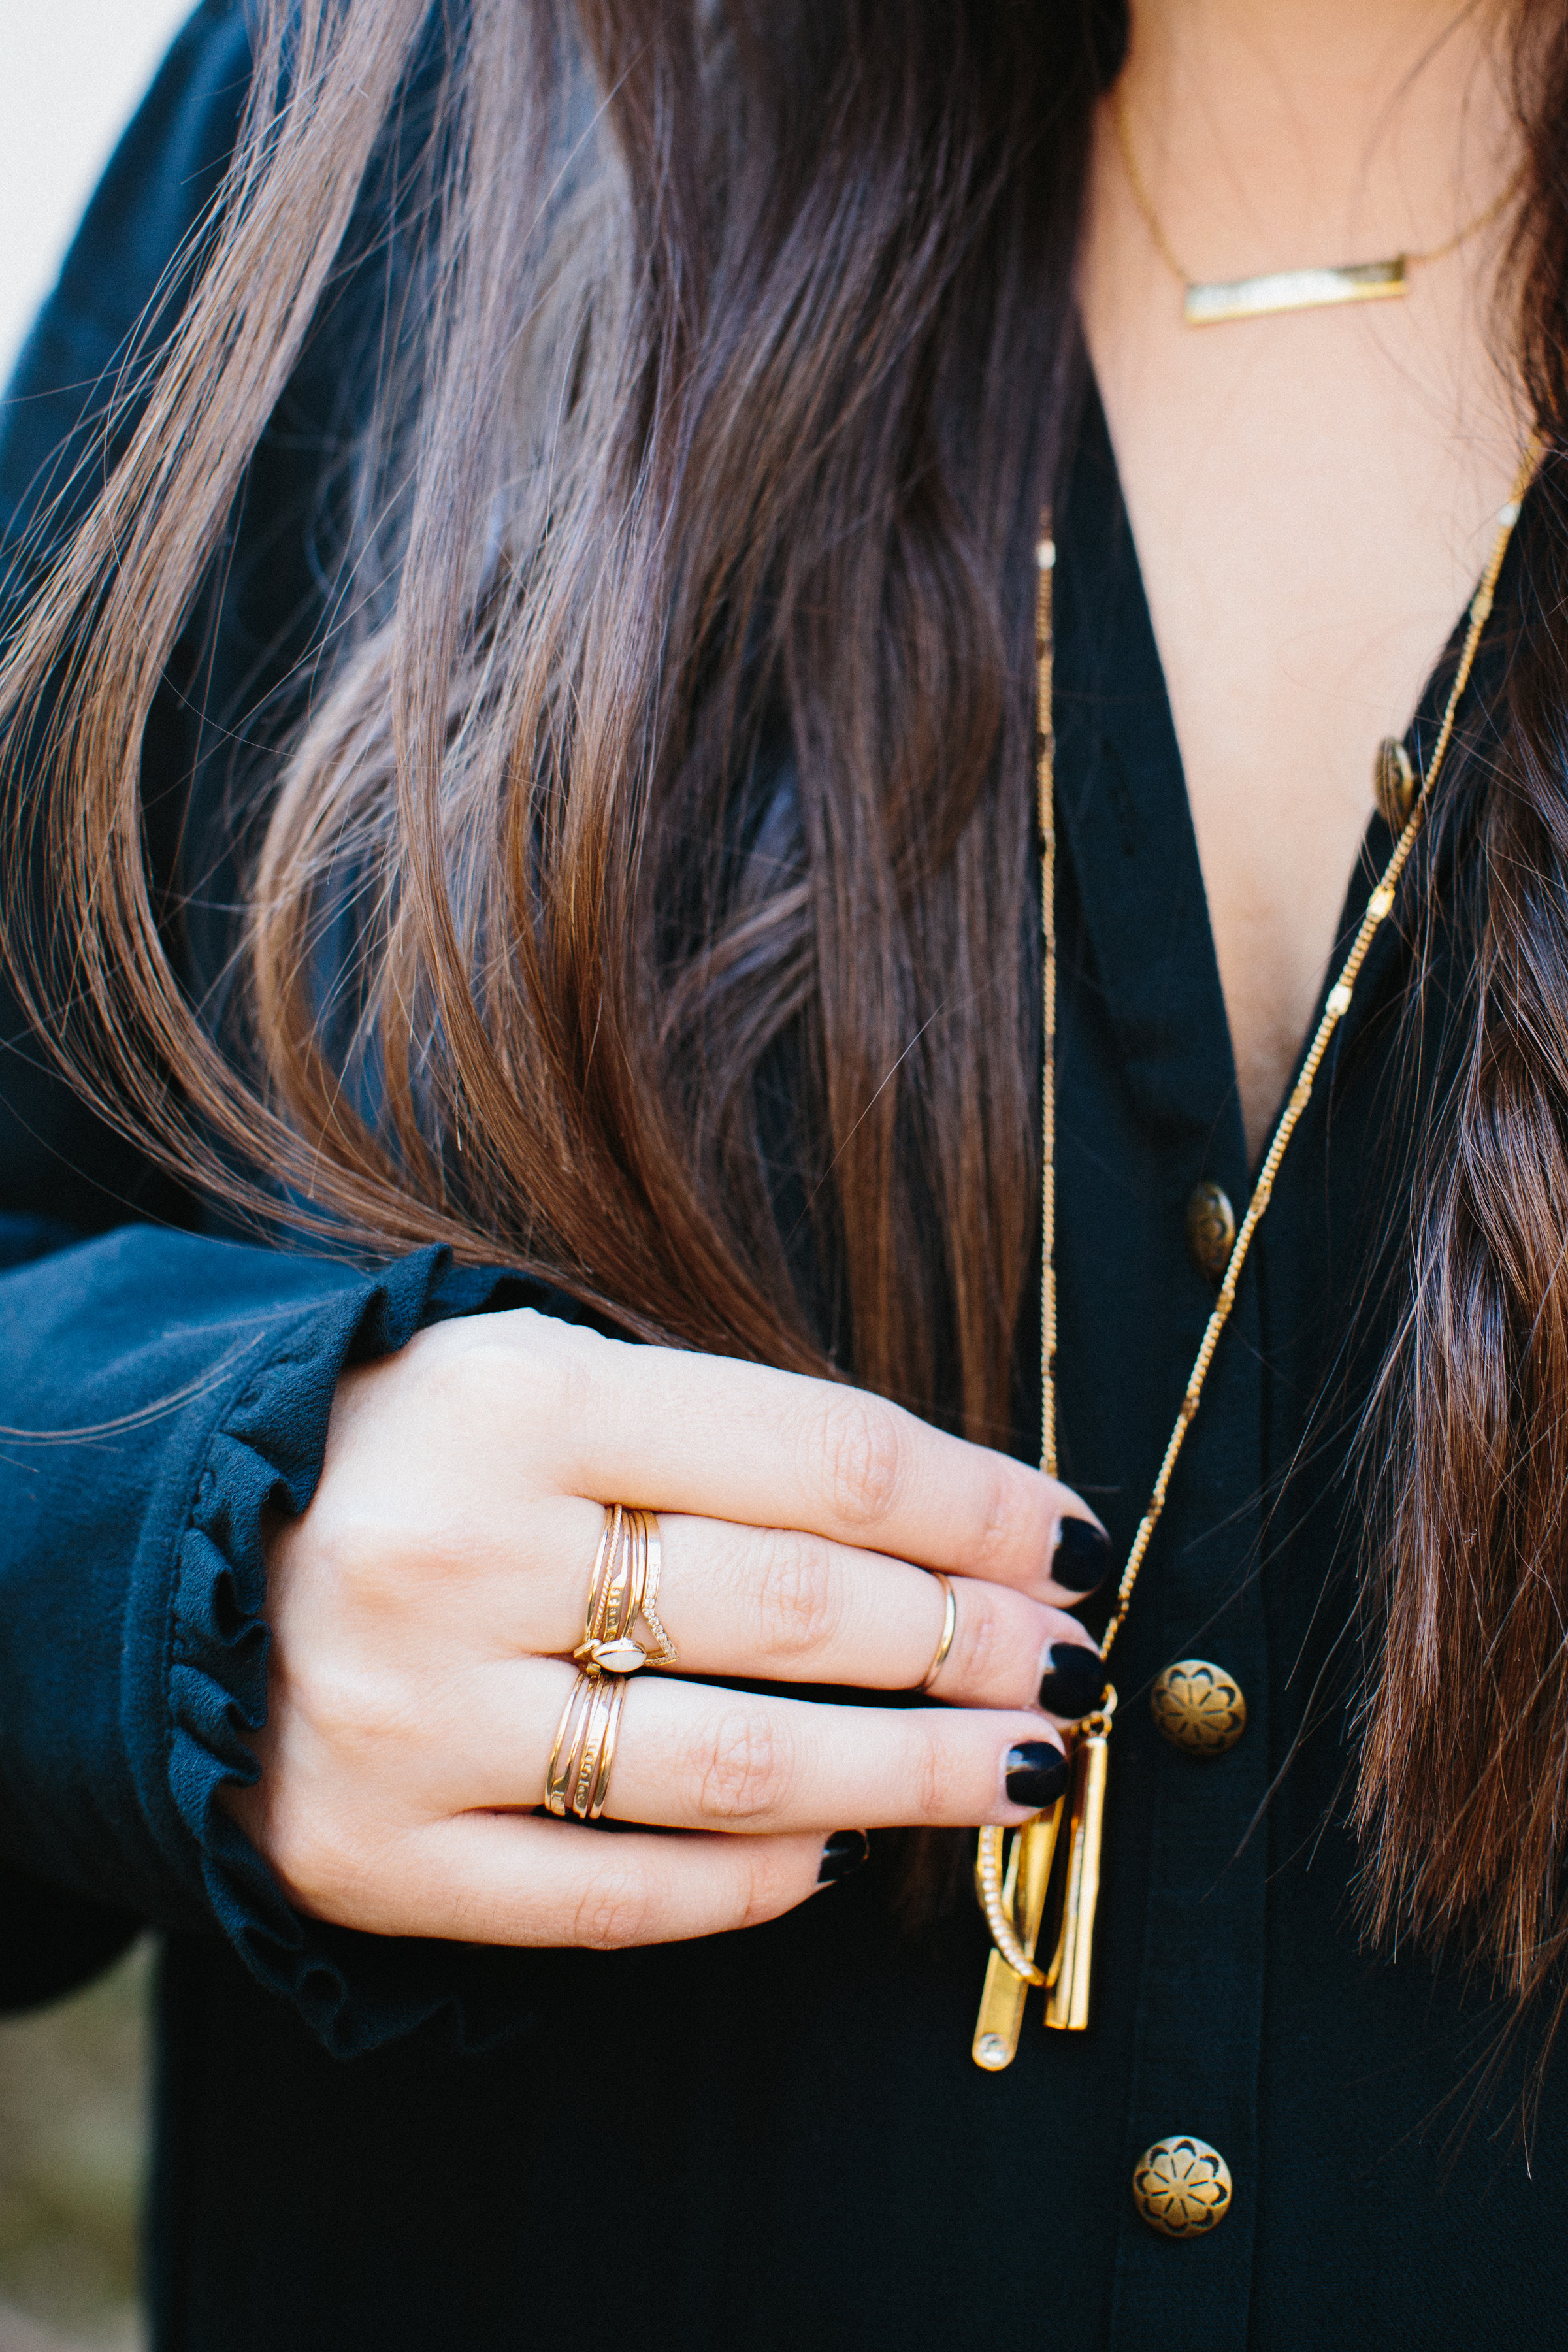 What Everyday Jewelry Do You Wear Most? I'm obsessed with stacking rings and delicate necklaces. Click through for the details. | glitterinc.com | @glitterinc